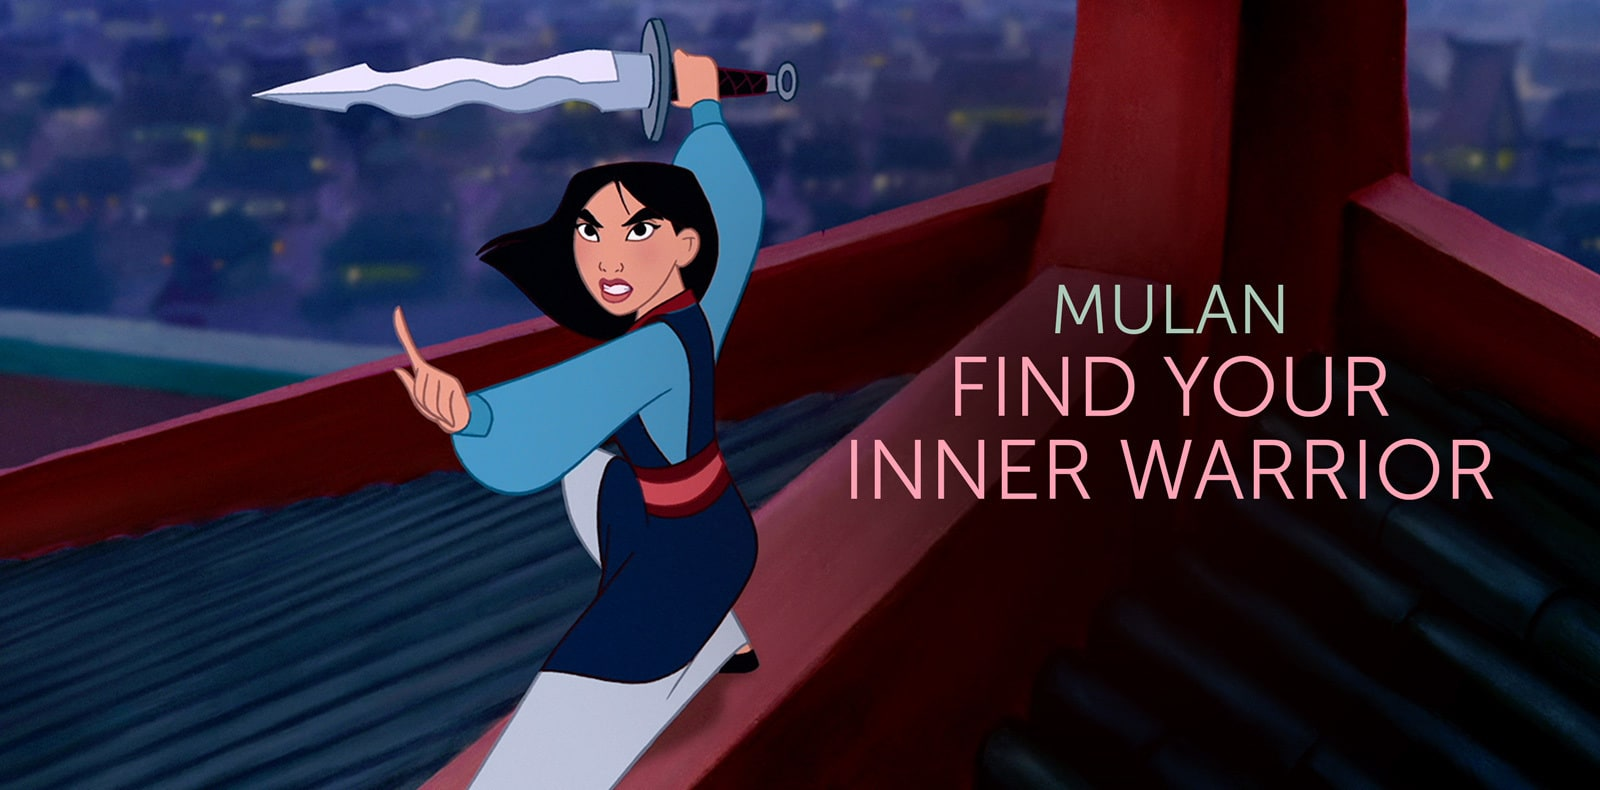 MOVIE ART MULAN